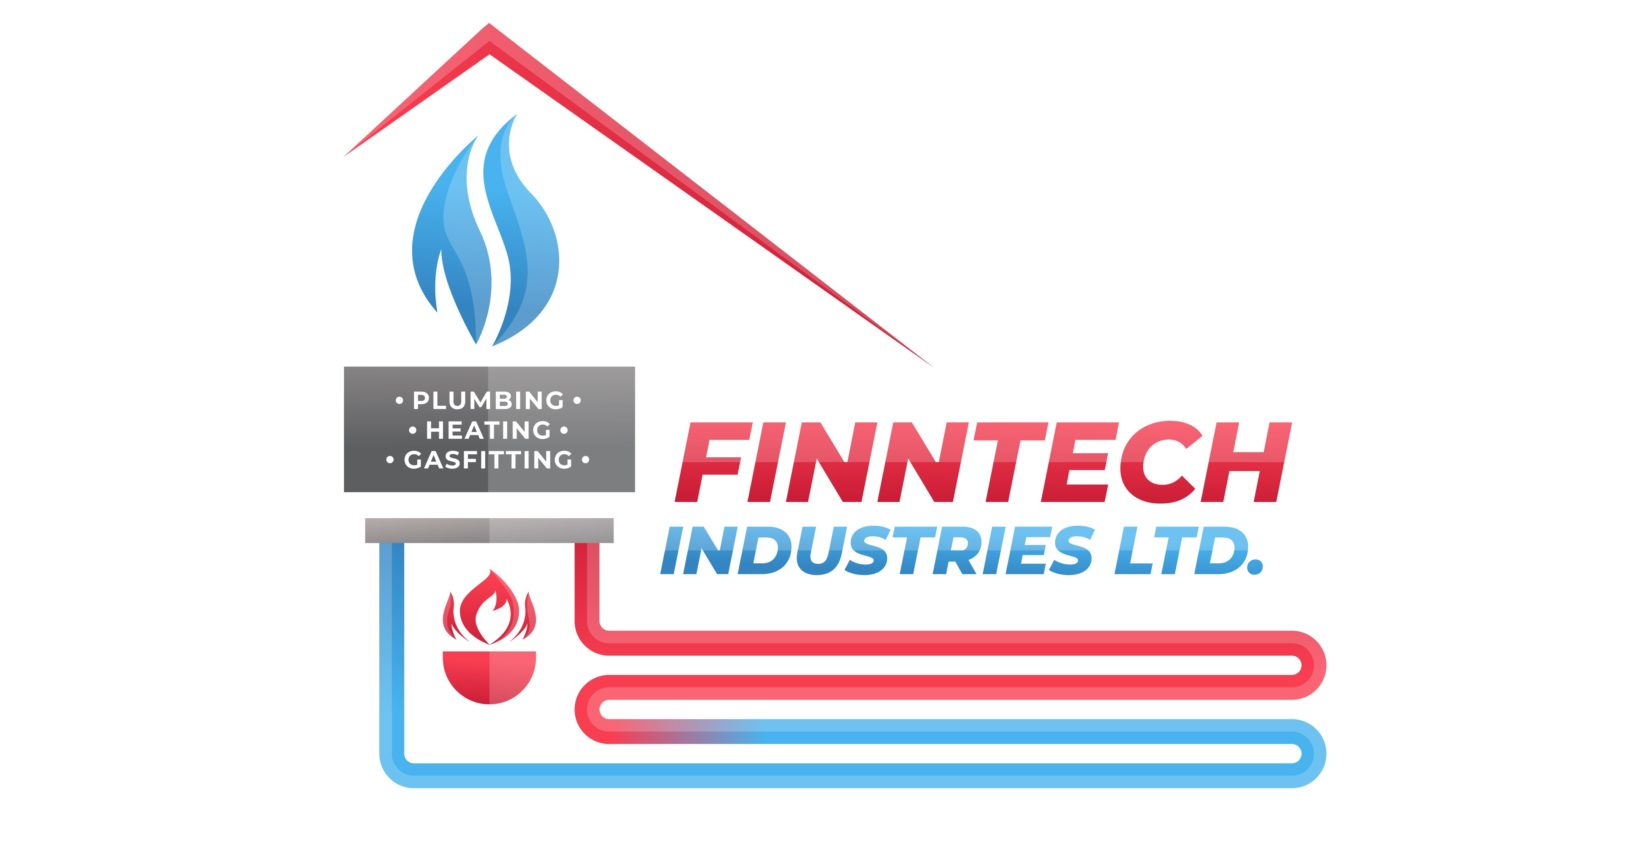 Finntech Industries Ltd.